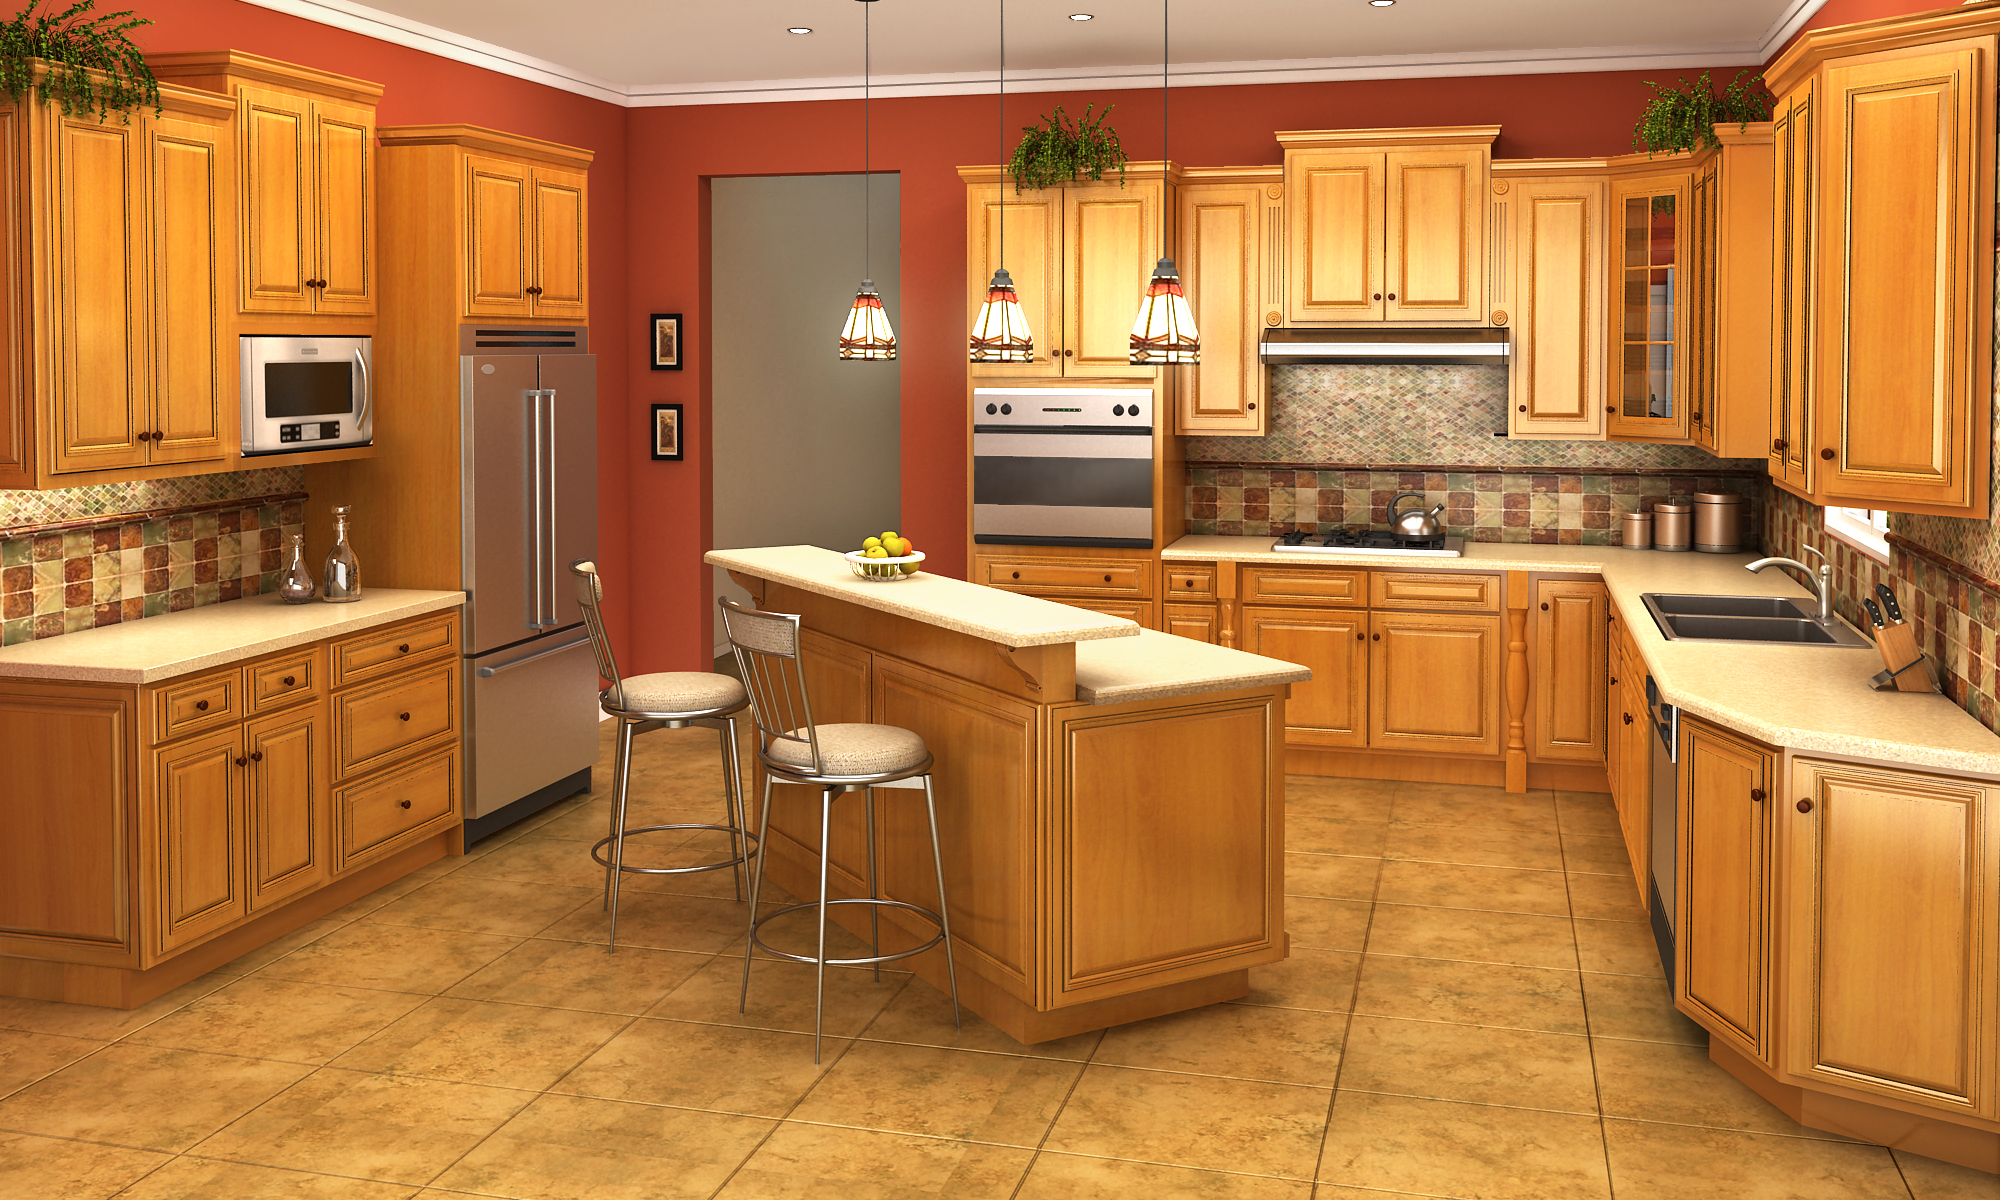 IKS Savannah Kitchen Cabinets at DALCO Kitchens